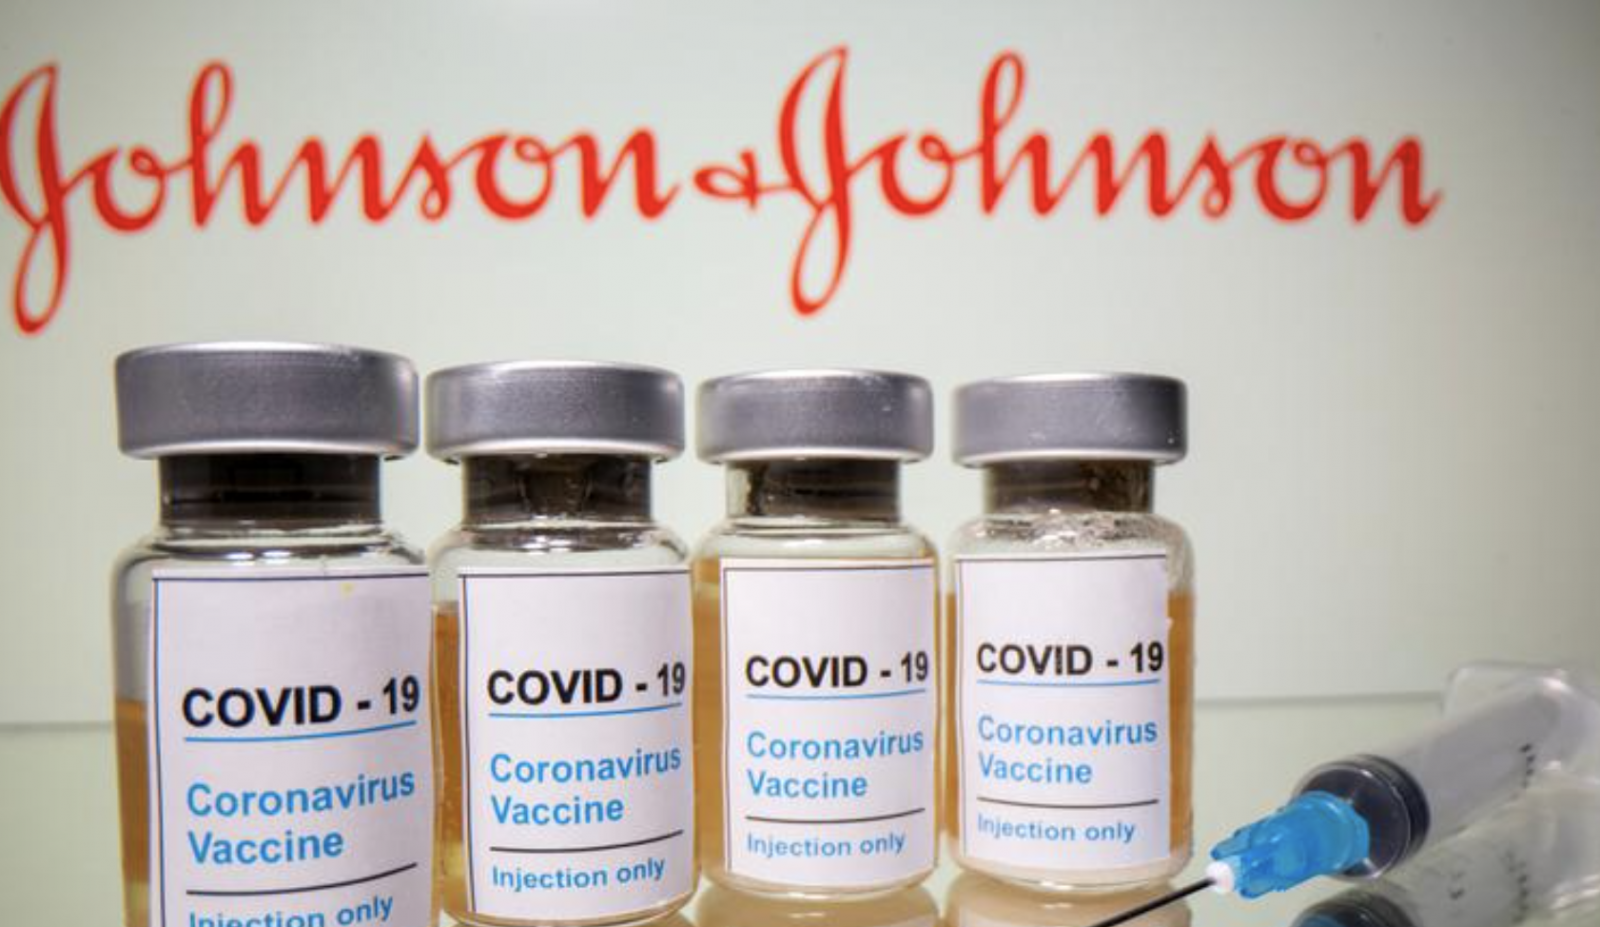 FDA advisory panel to review Johnson & Johnson COVID-19 vaccine with thumbs up expected